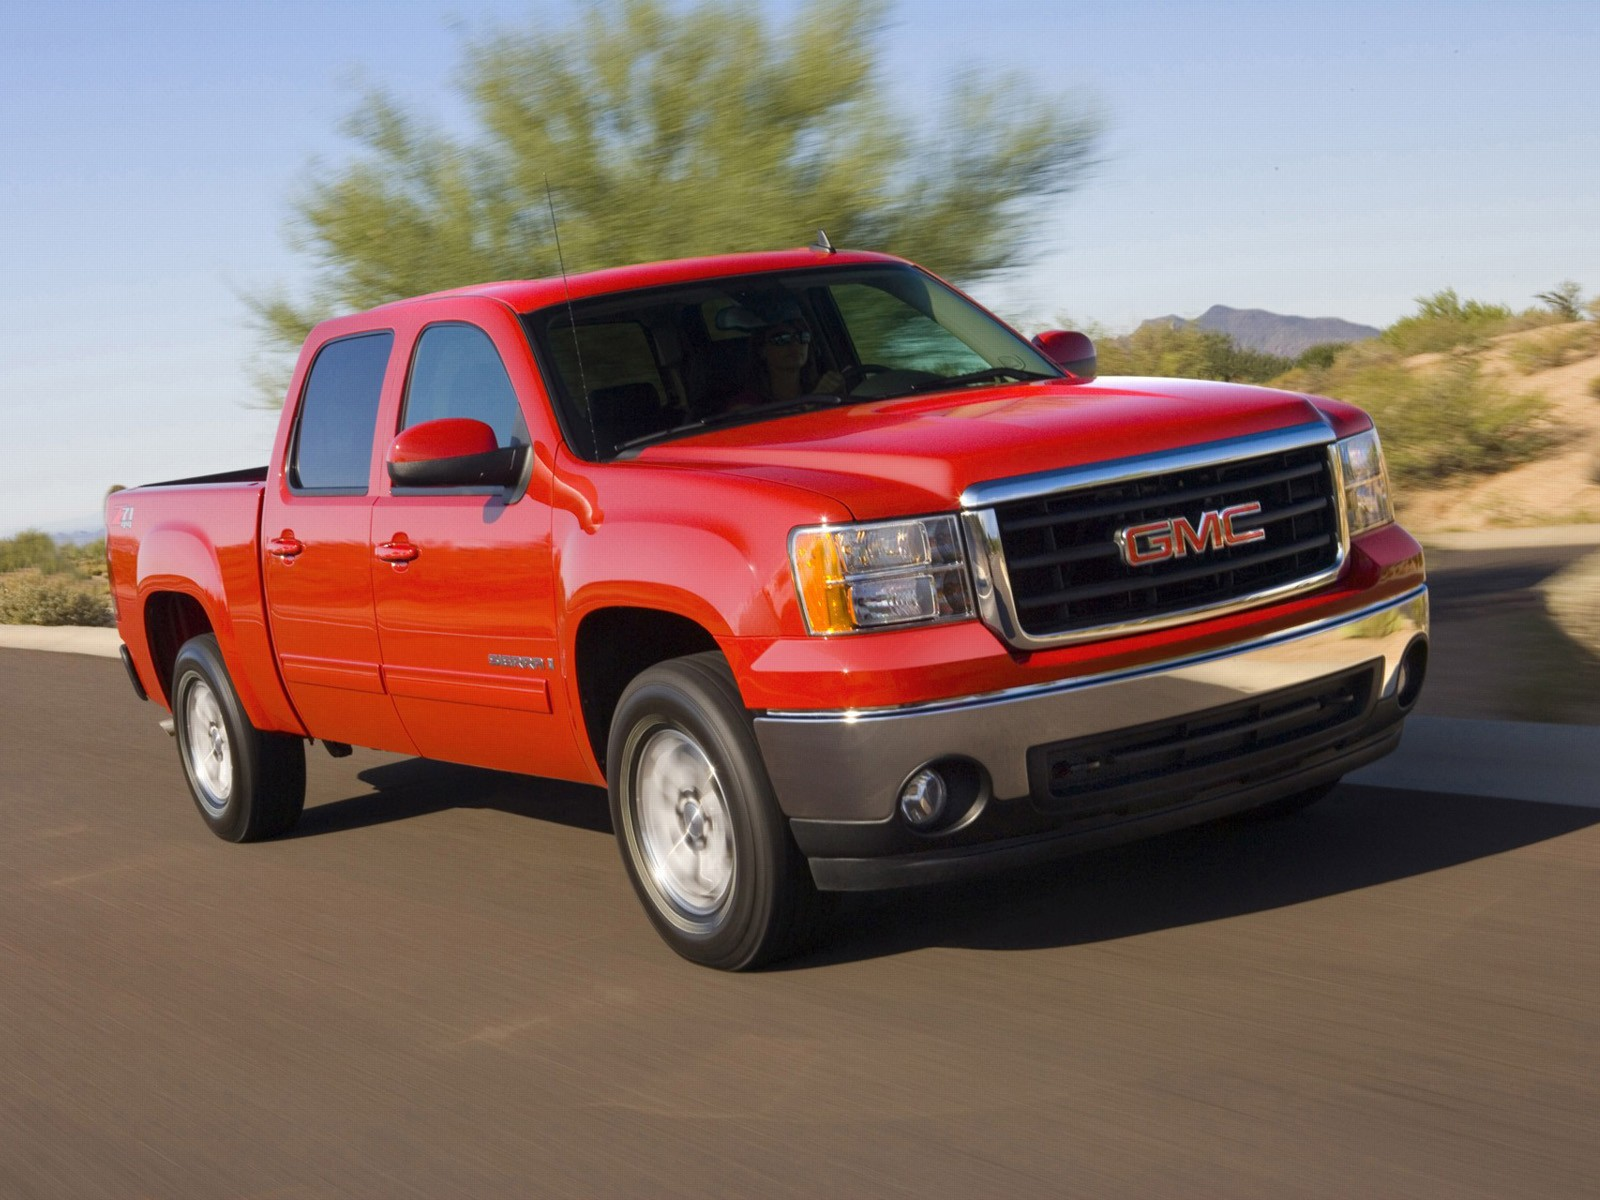 Chevy Silverado Side Step also Silverado Side Steps furthermore Ram Thumb X besides Dodge Ram Pocket Bolt On Rivet Style Fender Flares Paintable in addition Ram Tradesman Crew Diesel Pickups For Sale. on 2009 dodge ram 1500 crew cab